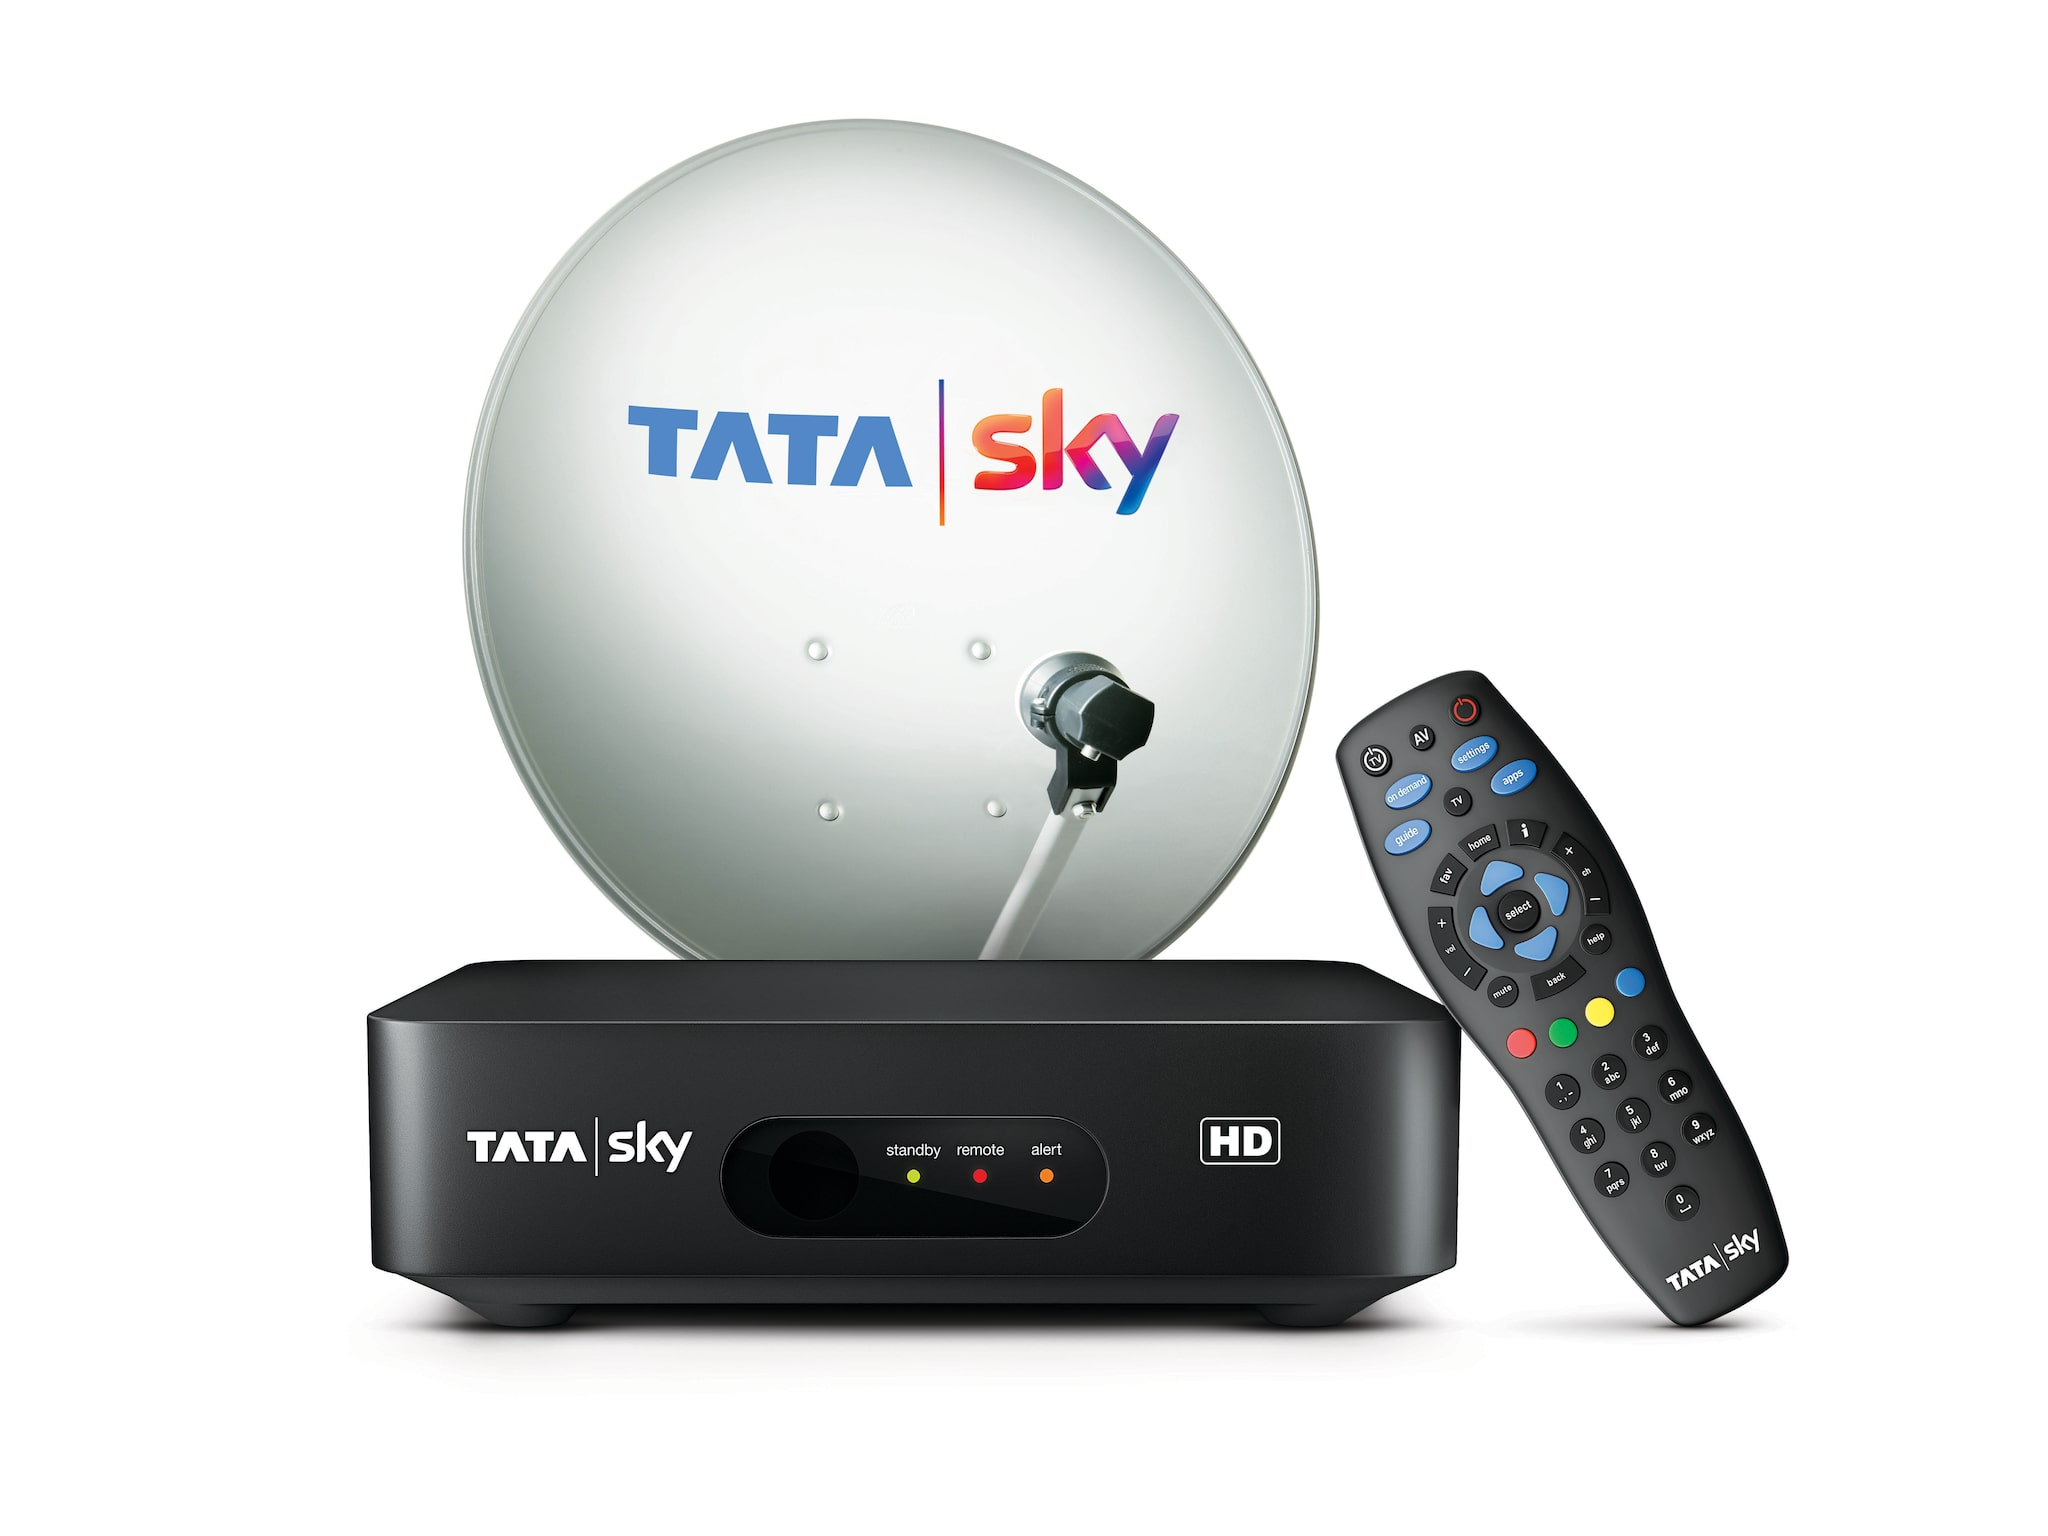 Buy Tata Sky Hd Connection With Semi Annual Tamil Super Hd Pack Online At Low Prices In India Paytmmall Com